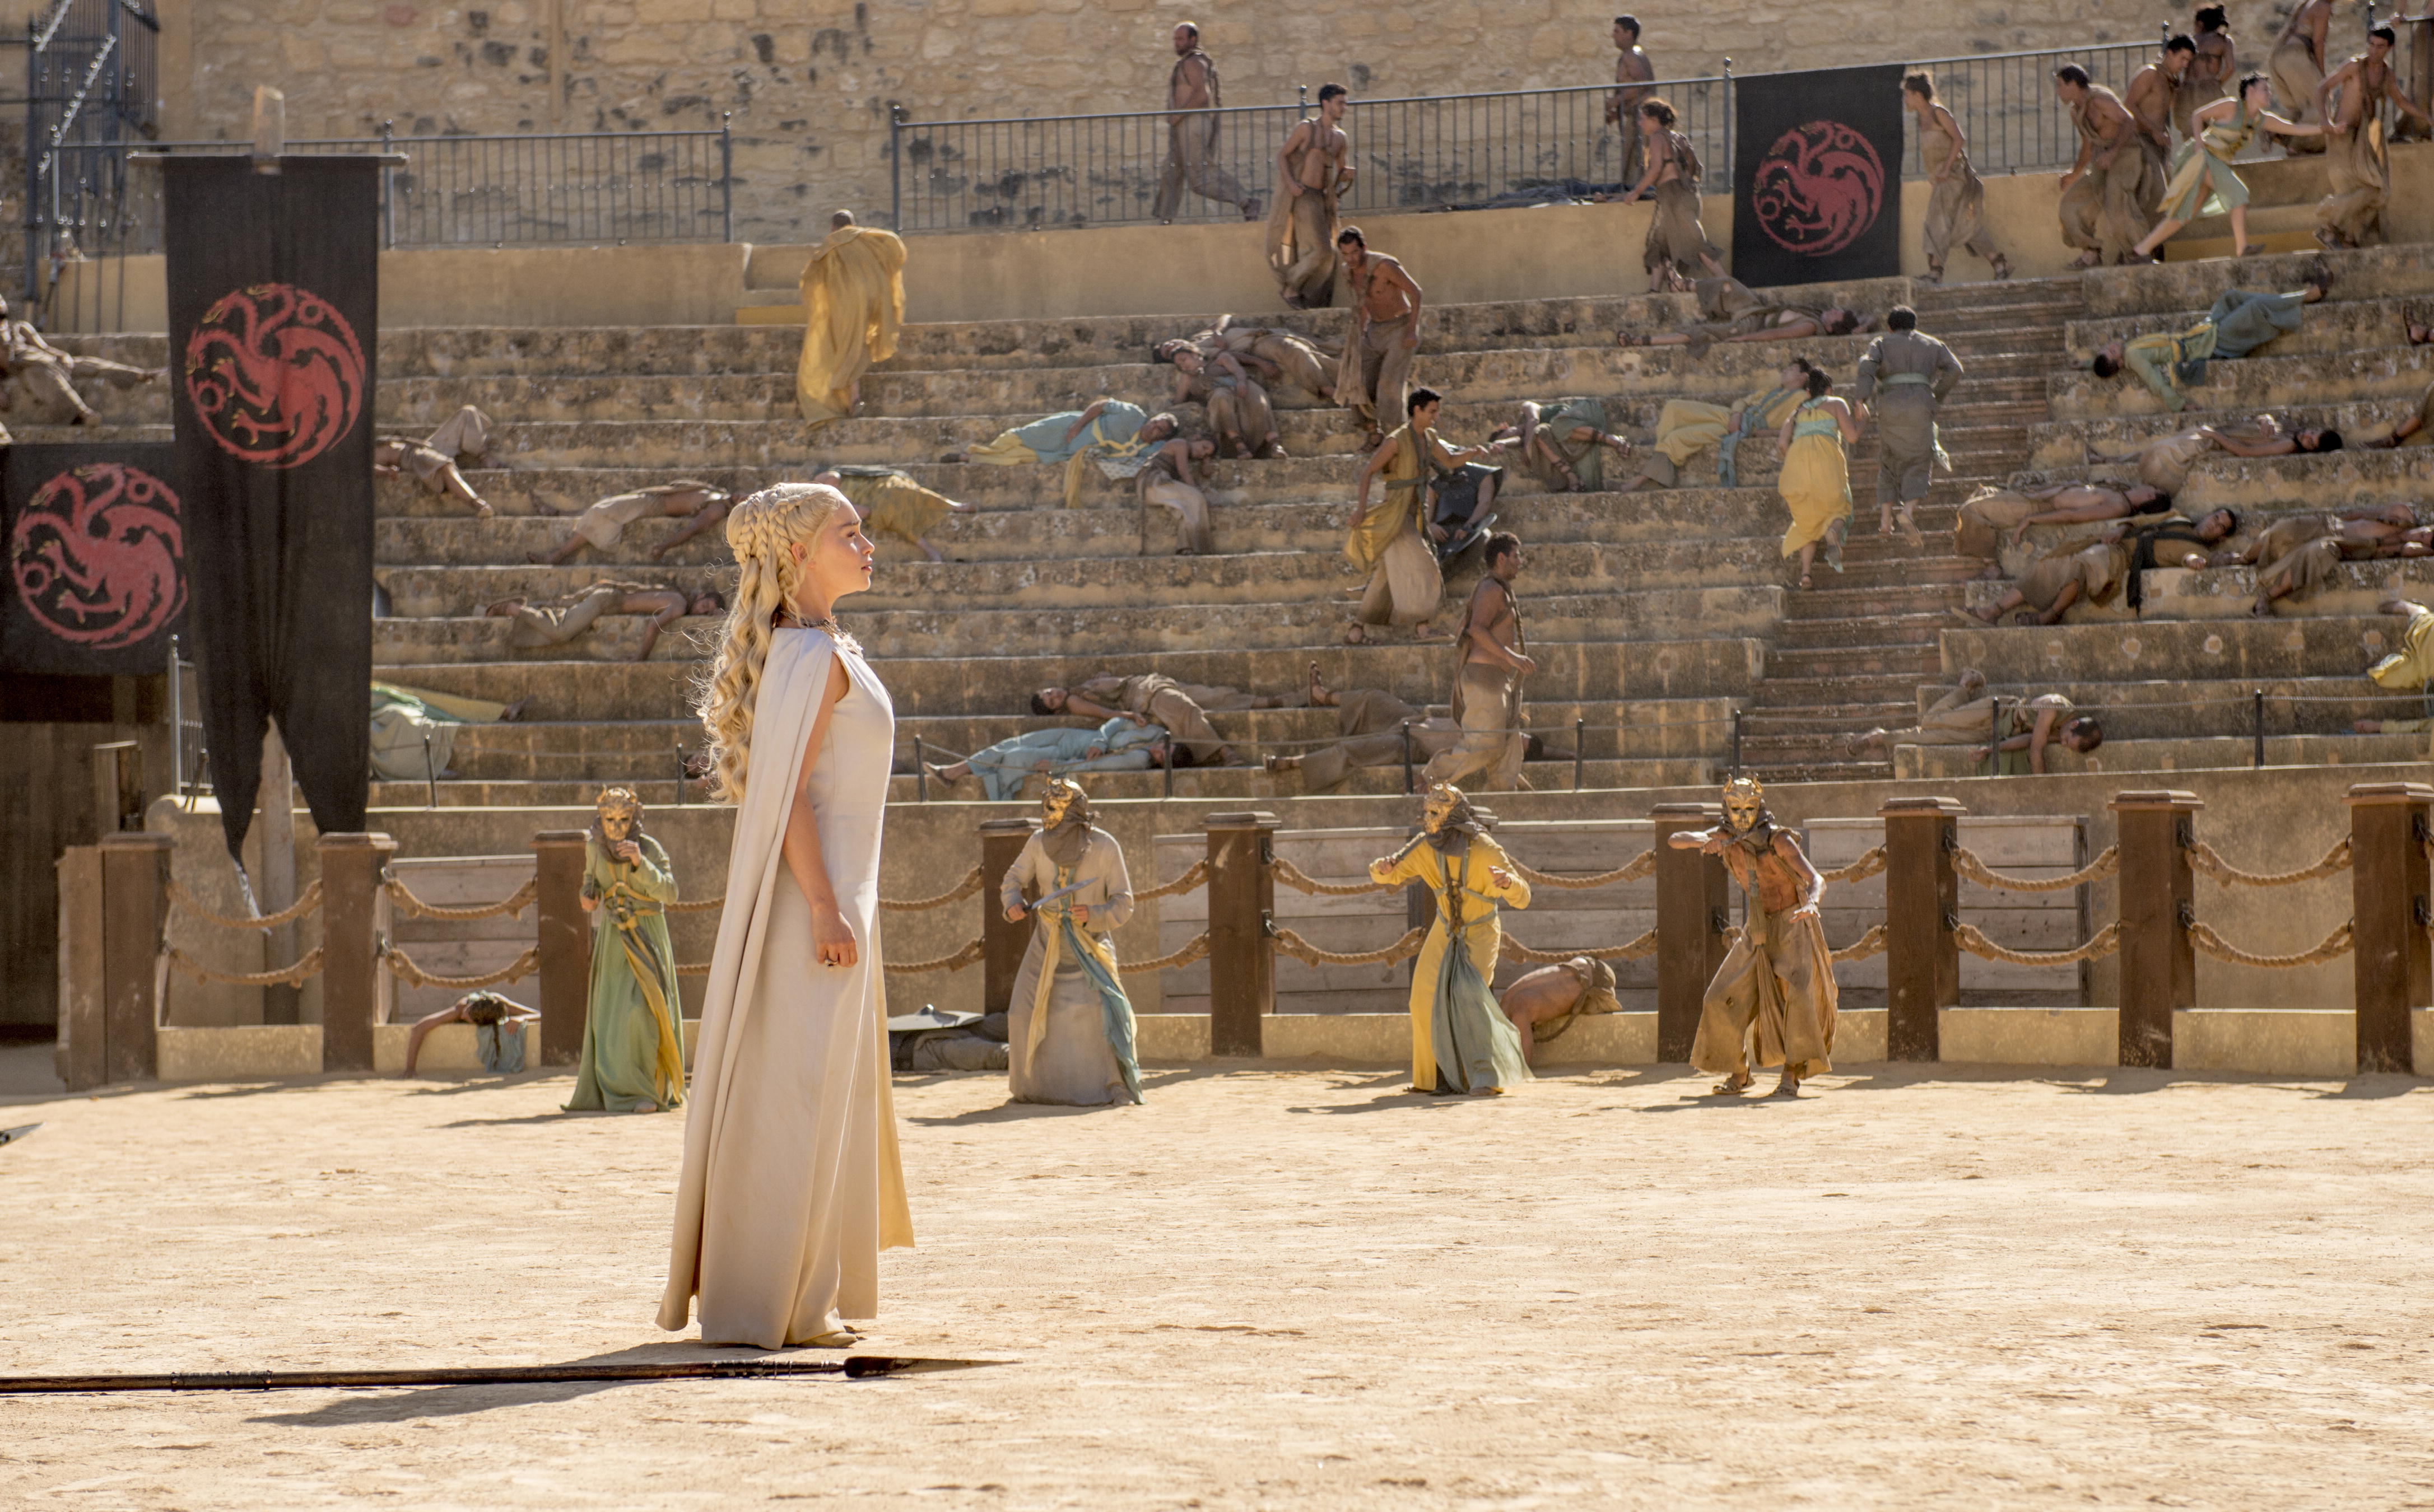 """Emilia Clarke in """"Game of Thrones,"""" season five. This scene was shot in a bullring in Osuna, Seville, Spain, which is a stop on a 10-day tour of Spain and Morocco offered by the Zicasso travel agency."""